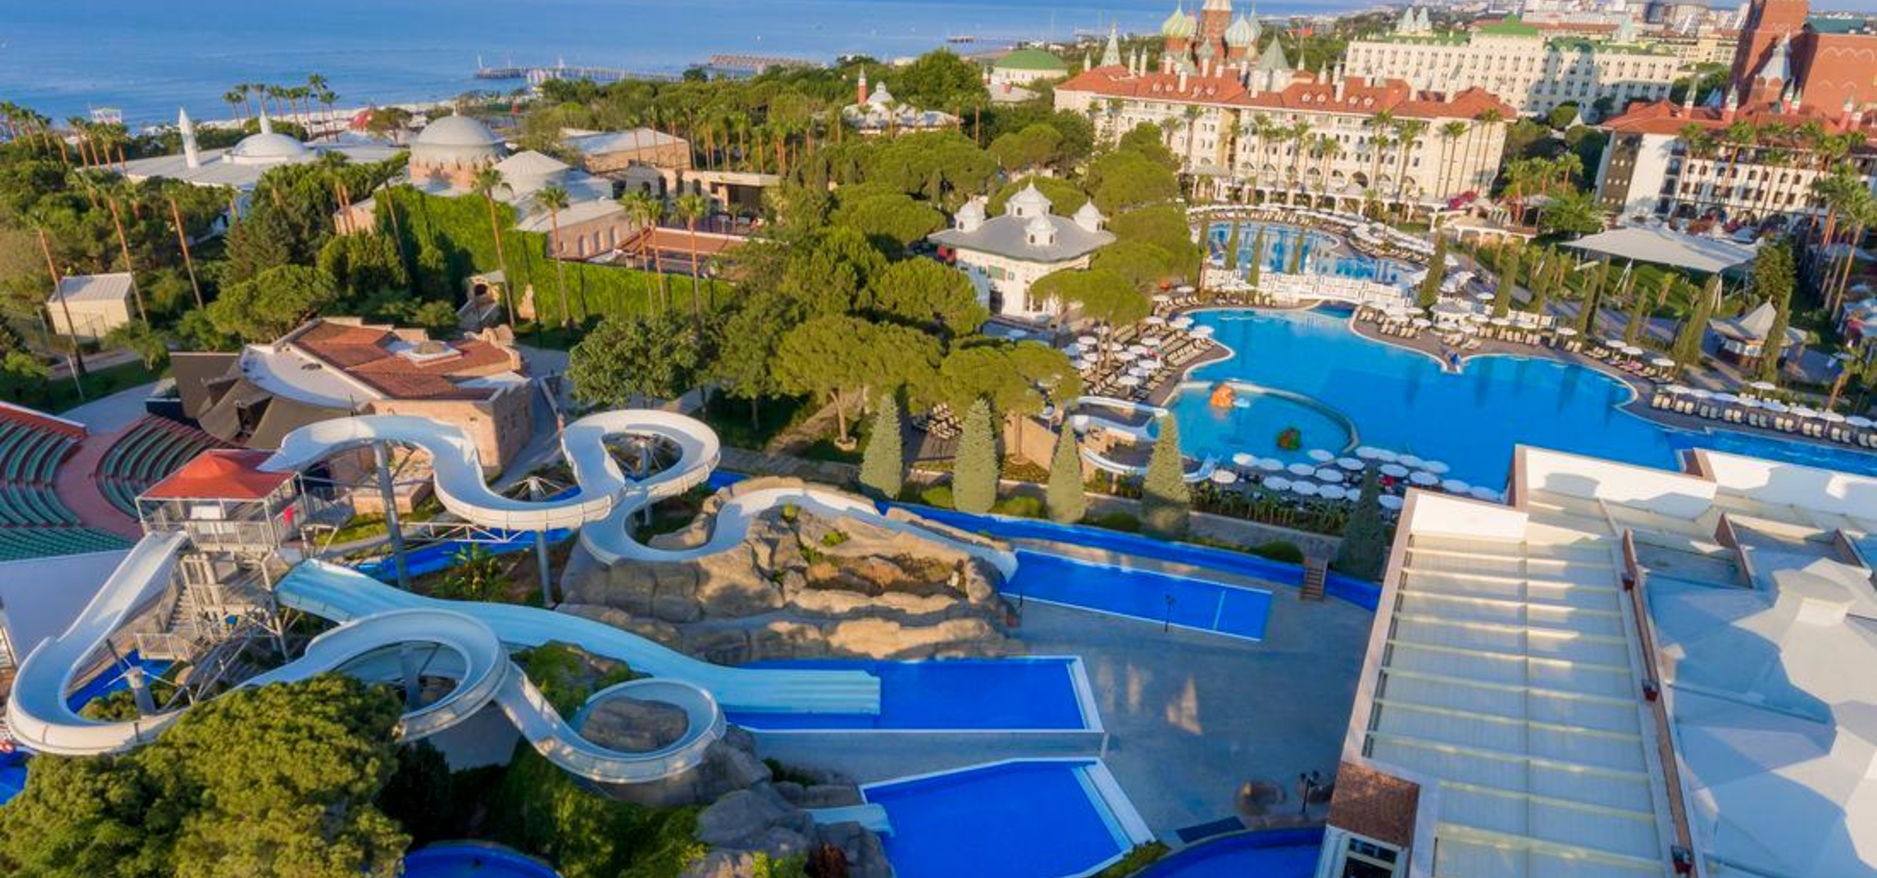 SWANDOR HOTELS & RESORT TOPKAPI PALACE 5*